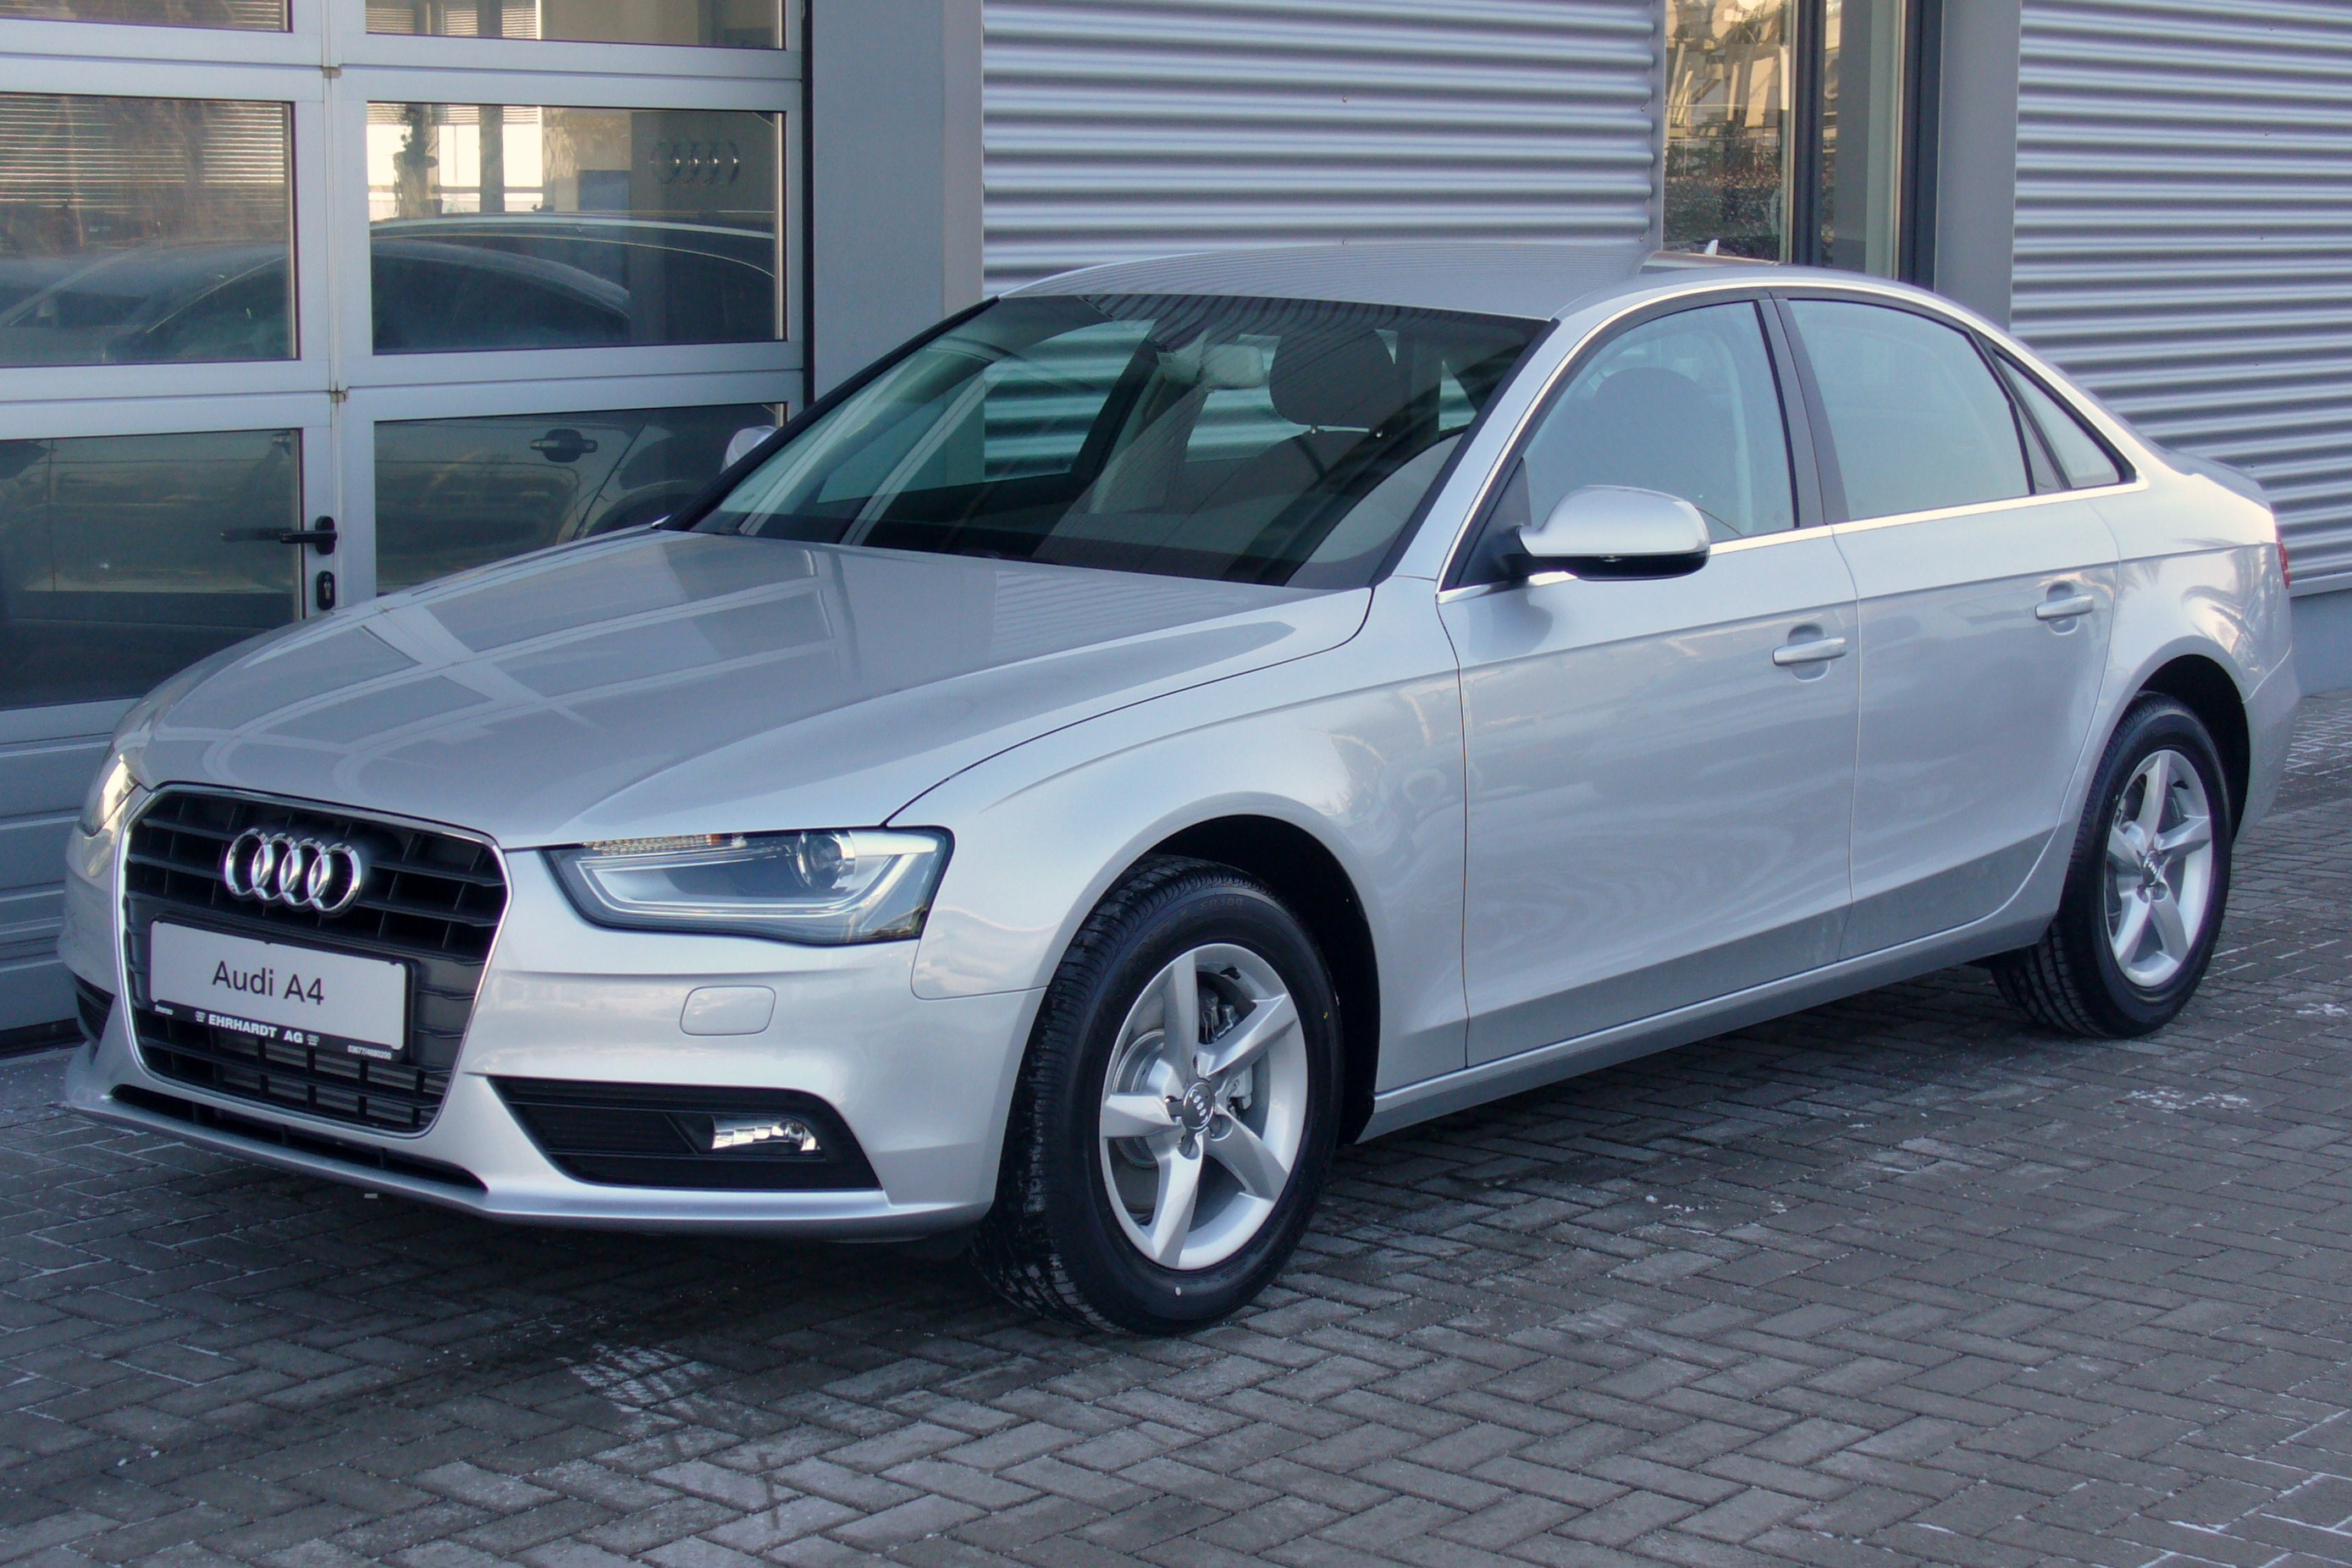 Pictures of audi a4 #1